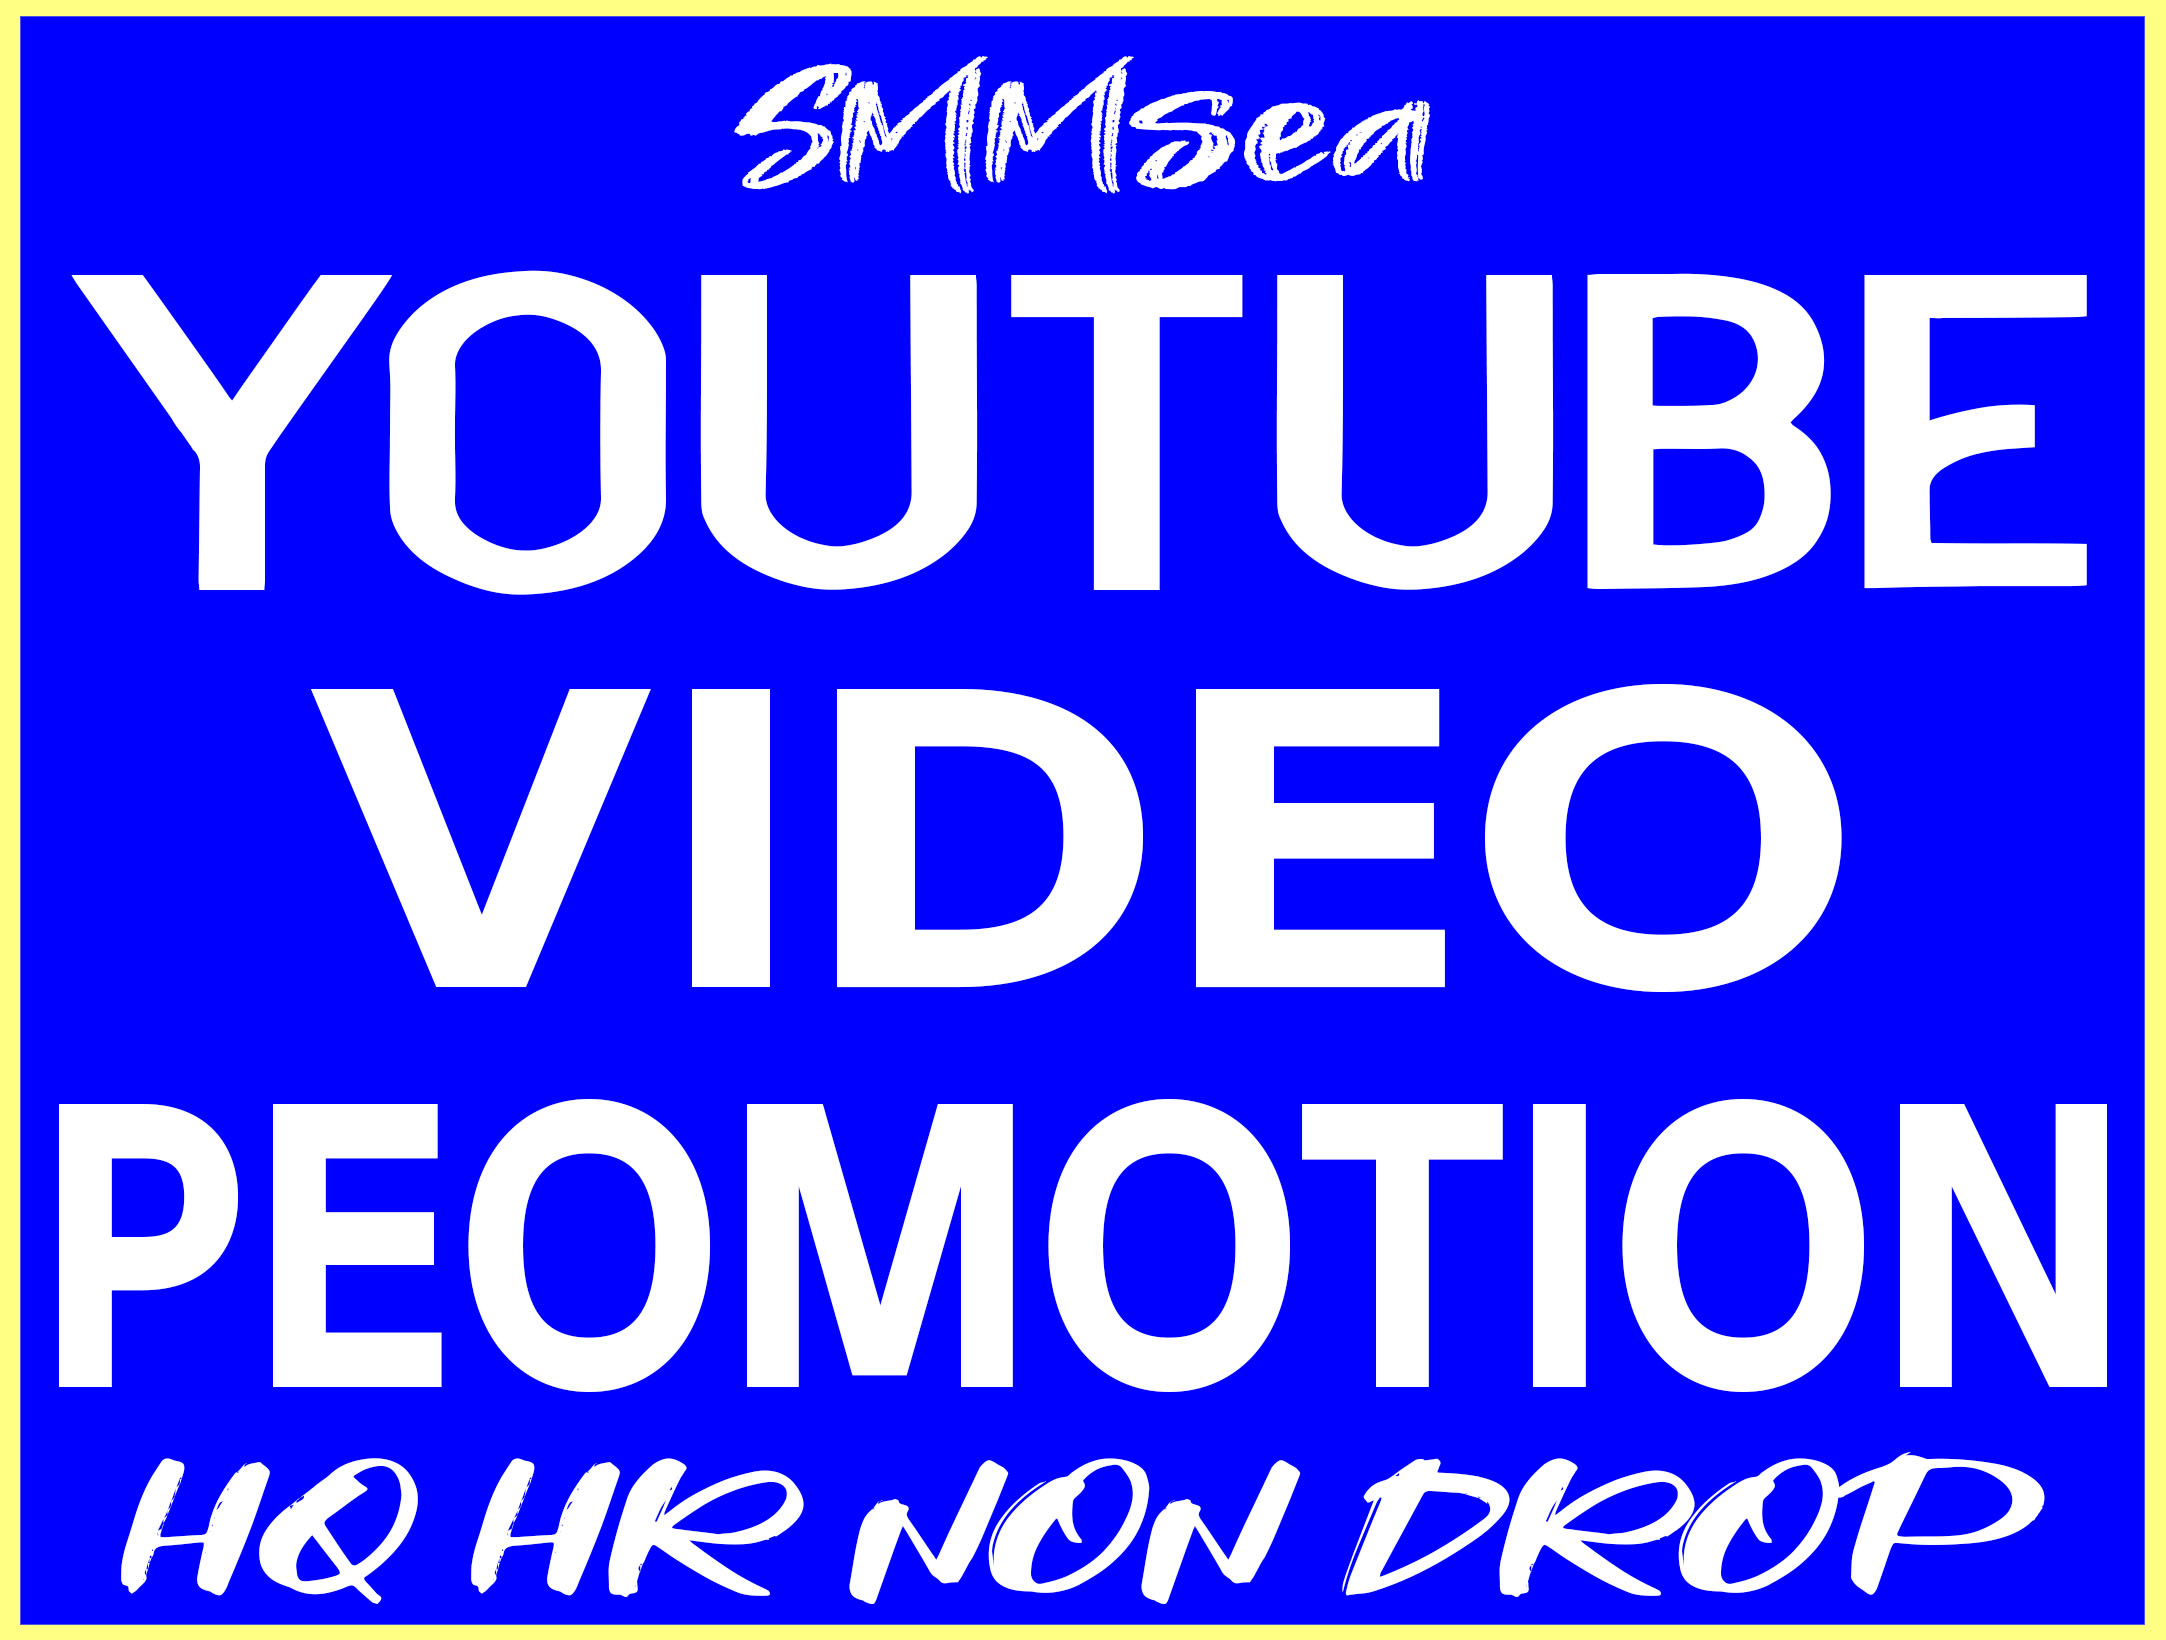 YouTube Video Promotion High Quality & Non Drop Service